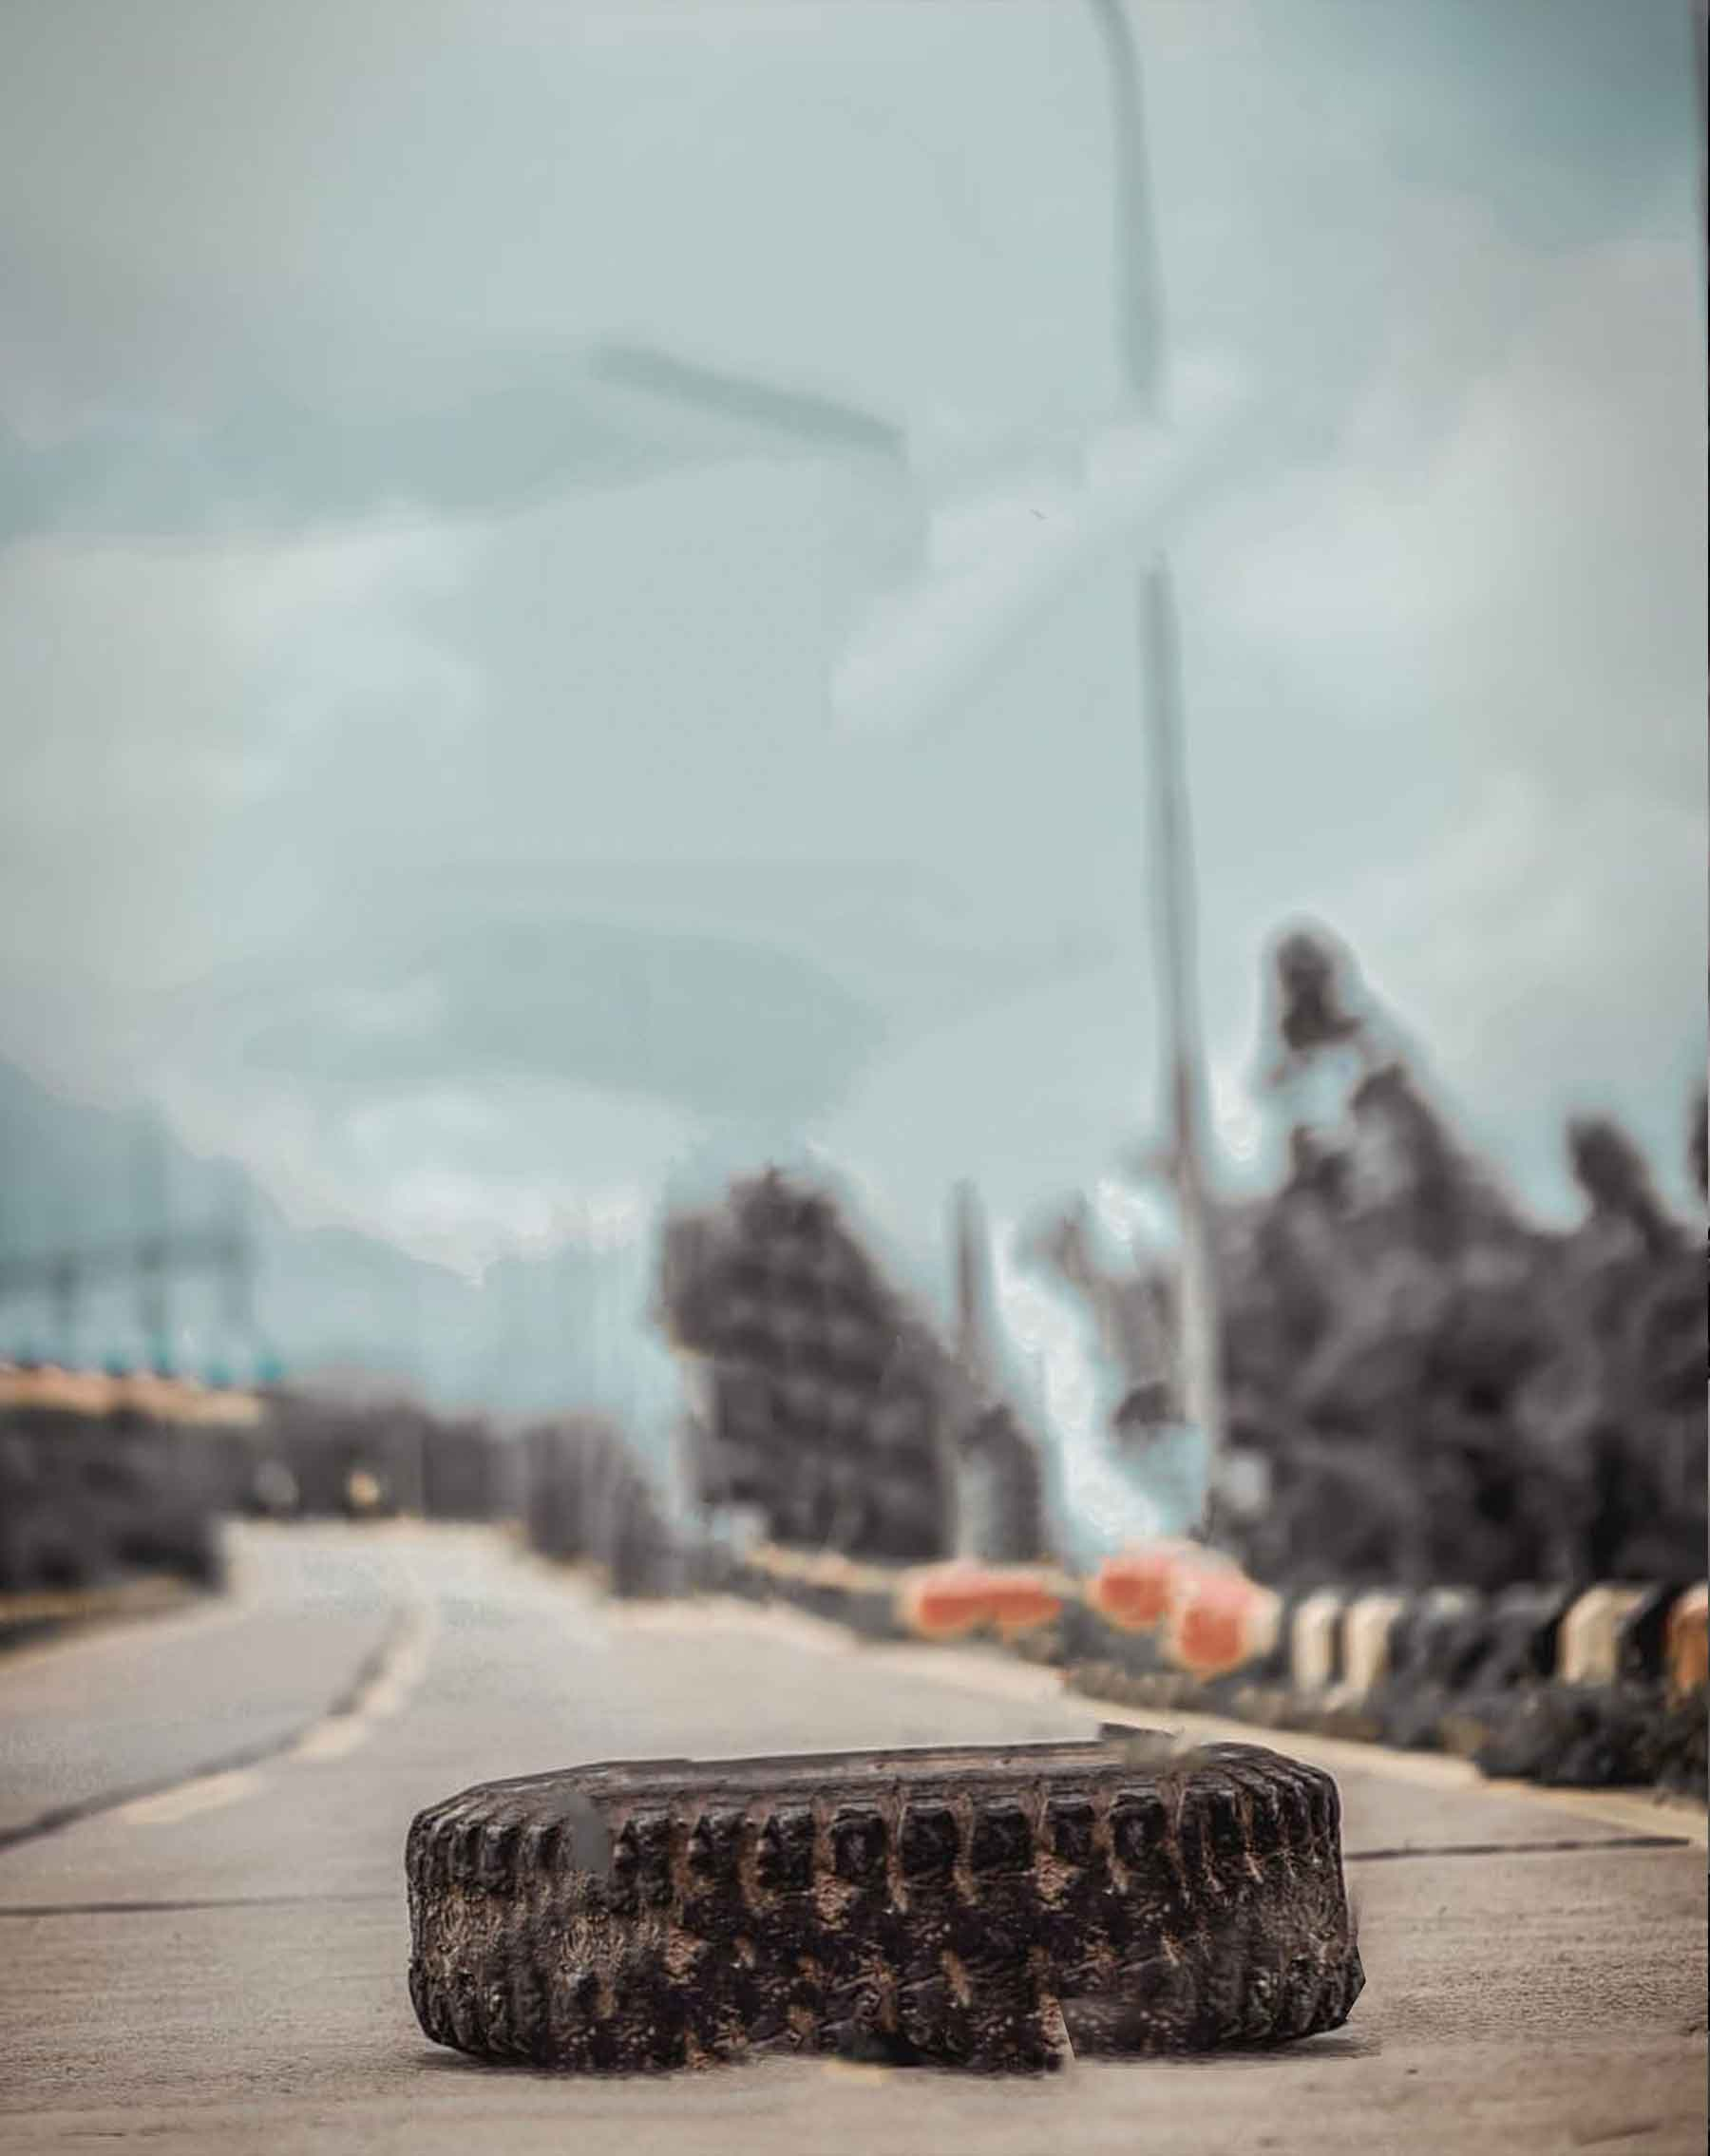 Big Tyre Hd Background Free Stock Photos Free Download